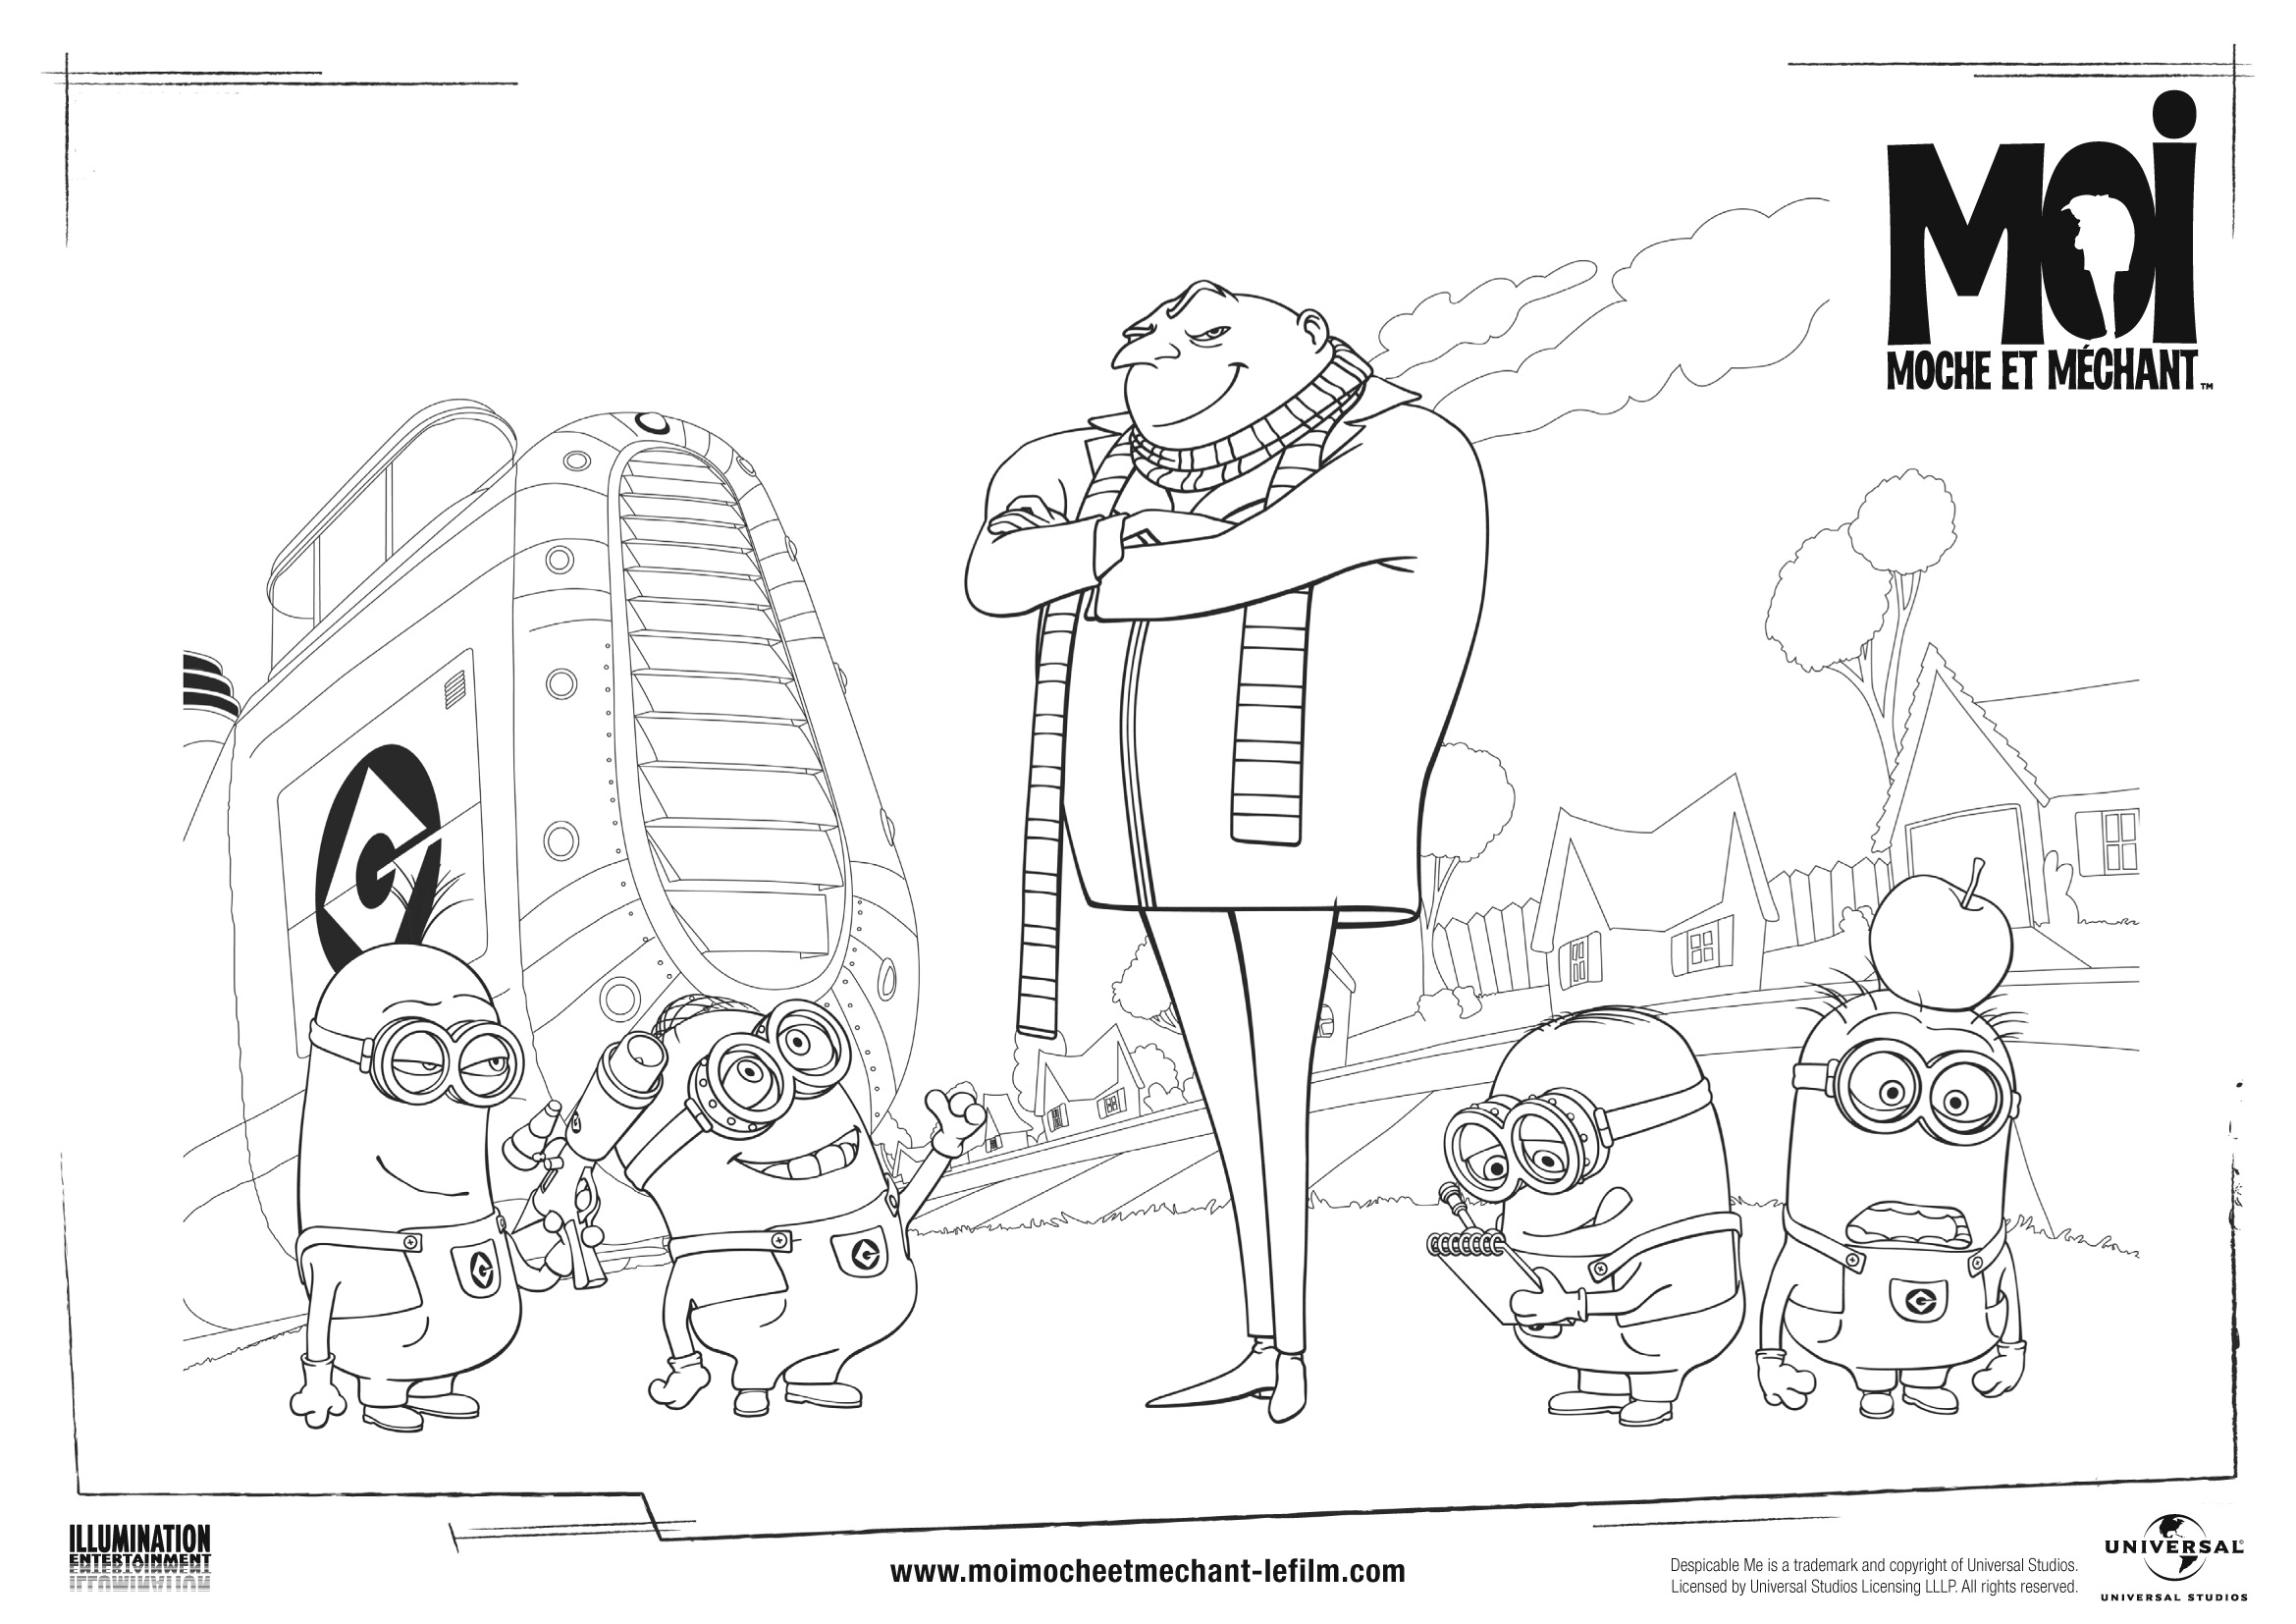 Coloring pages to print minions - Coloring Pages To Print For Minions Minions Coloring Pages Print Coloring Pages Despicable Minions Coloring